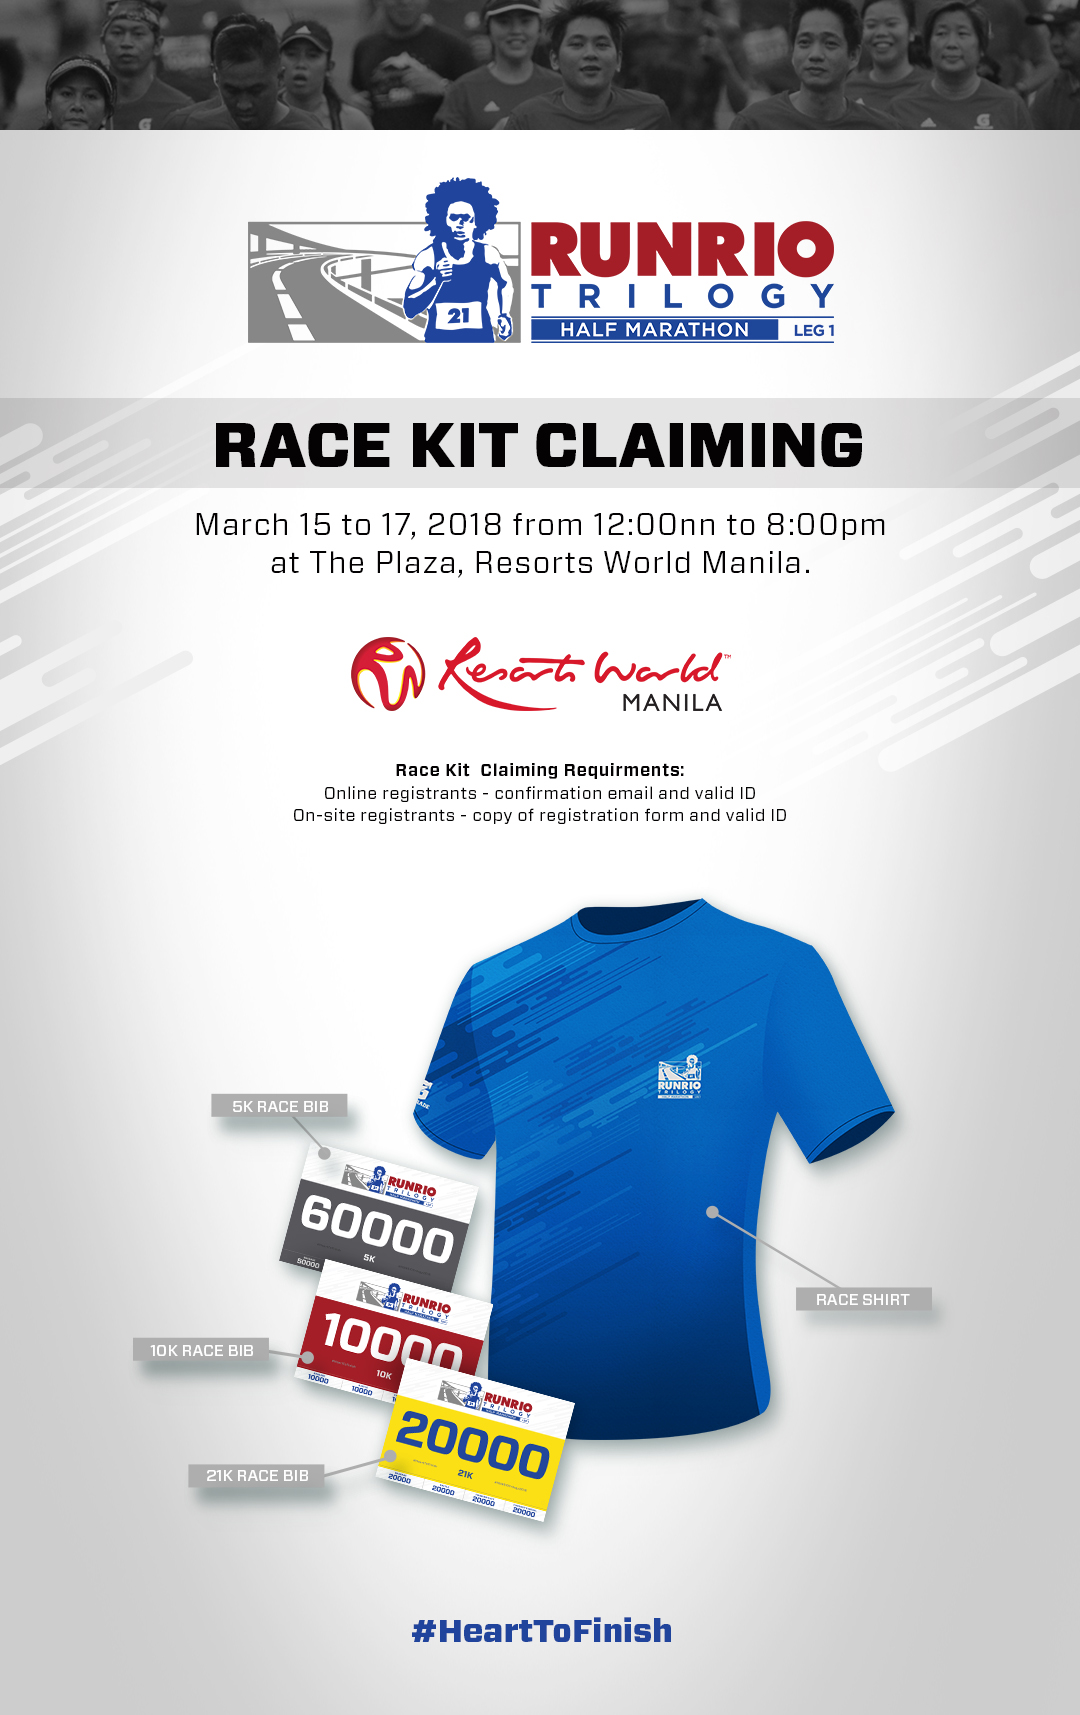 RUNRIO Trilogy Race Kit Claiming